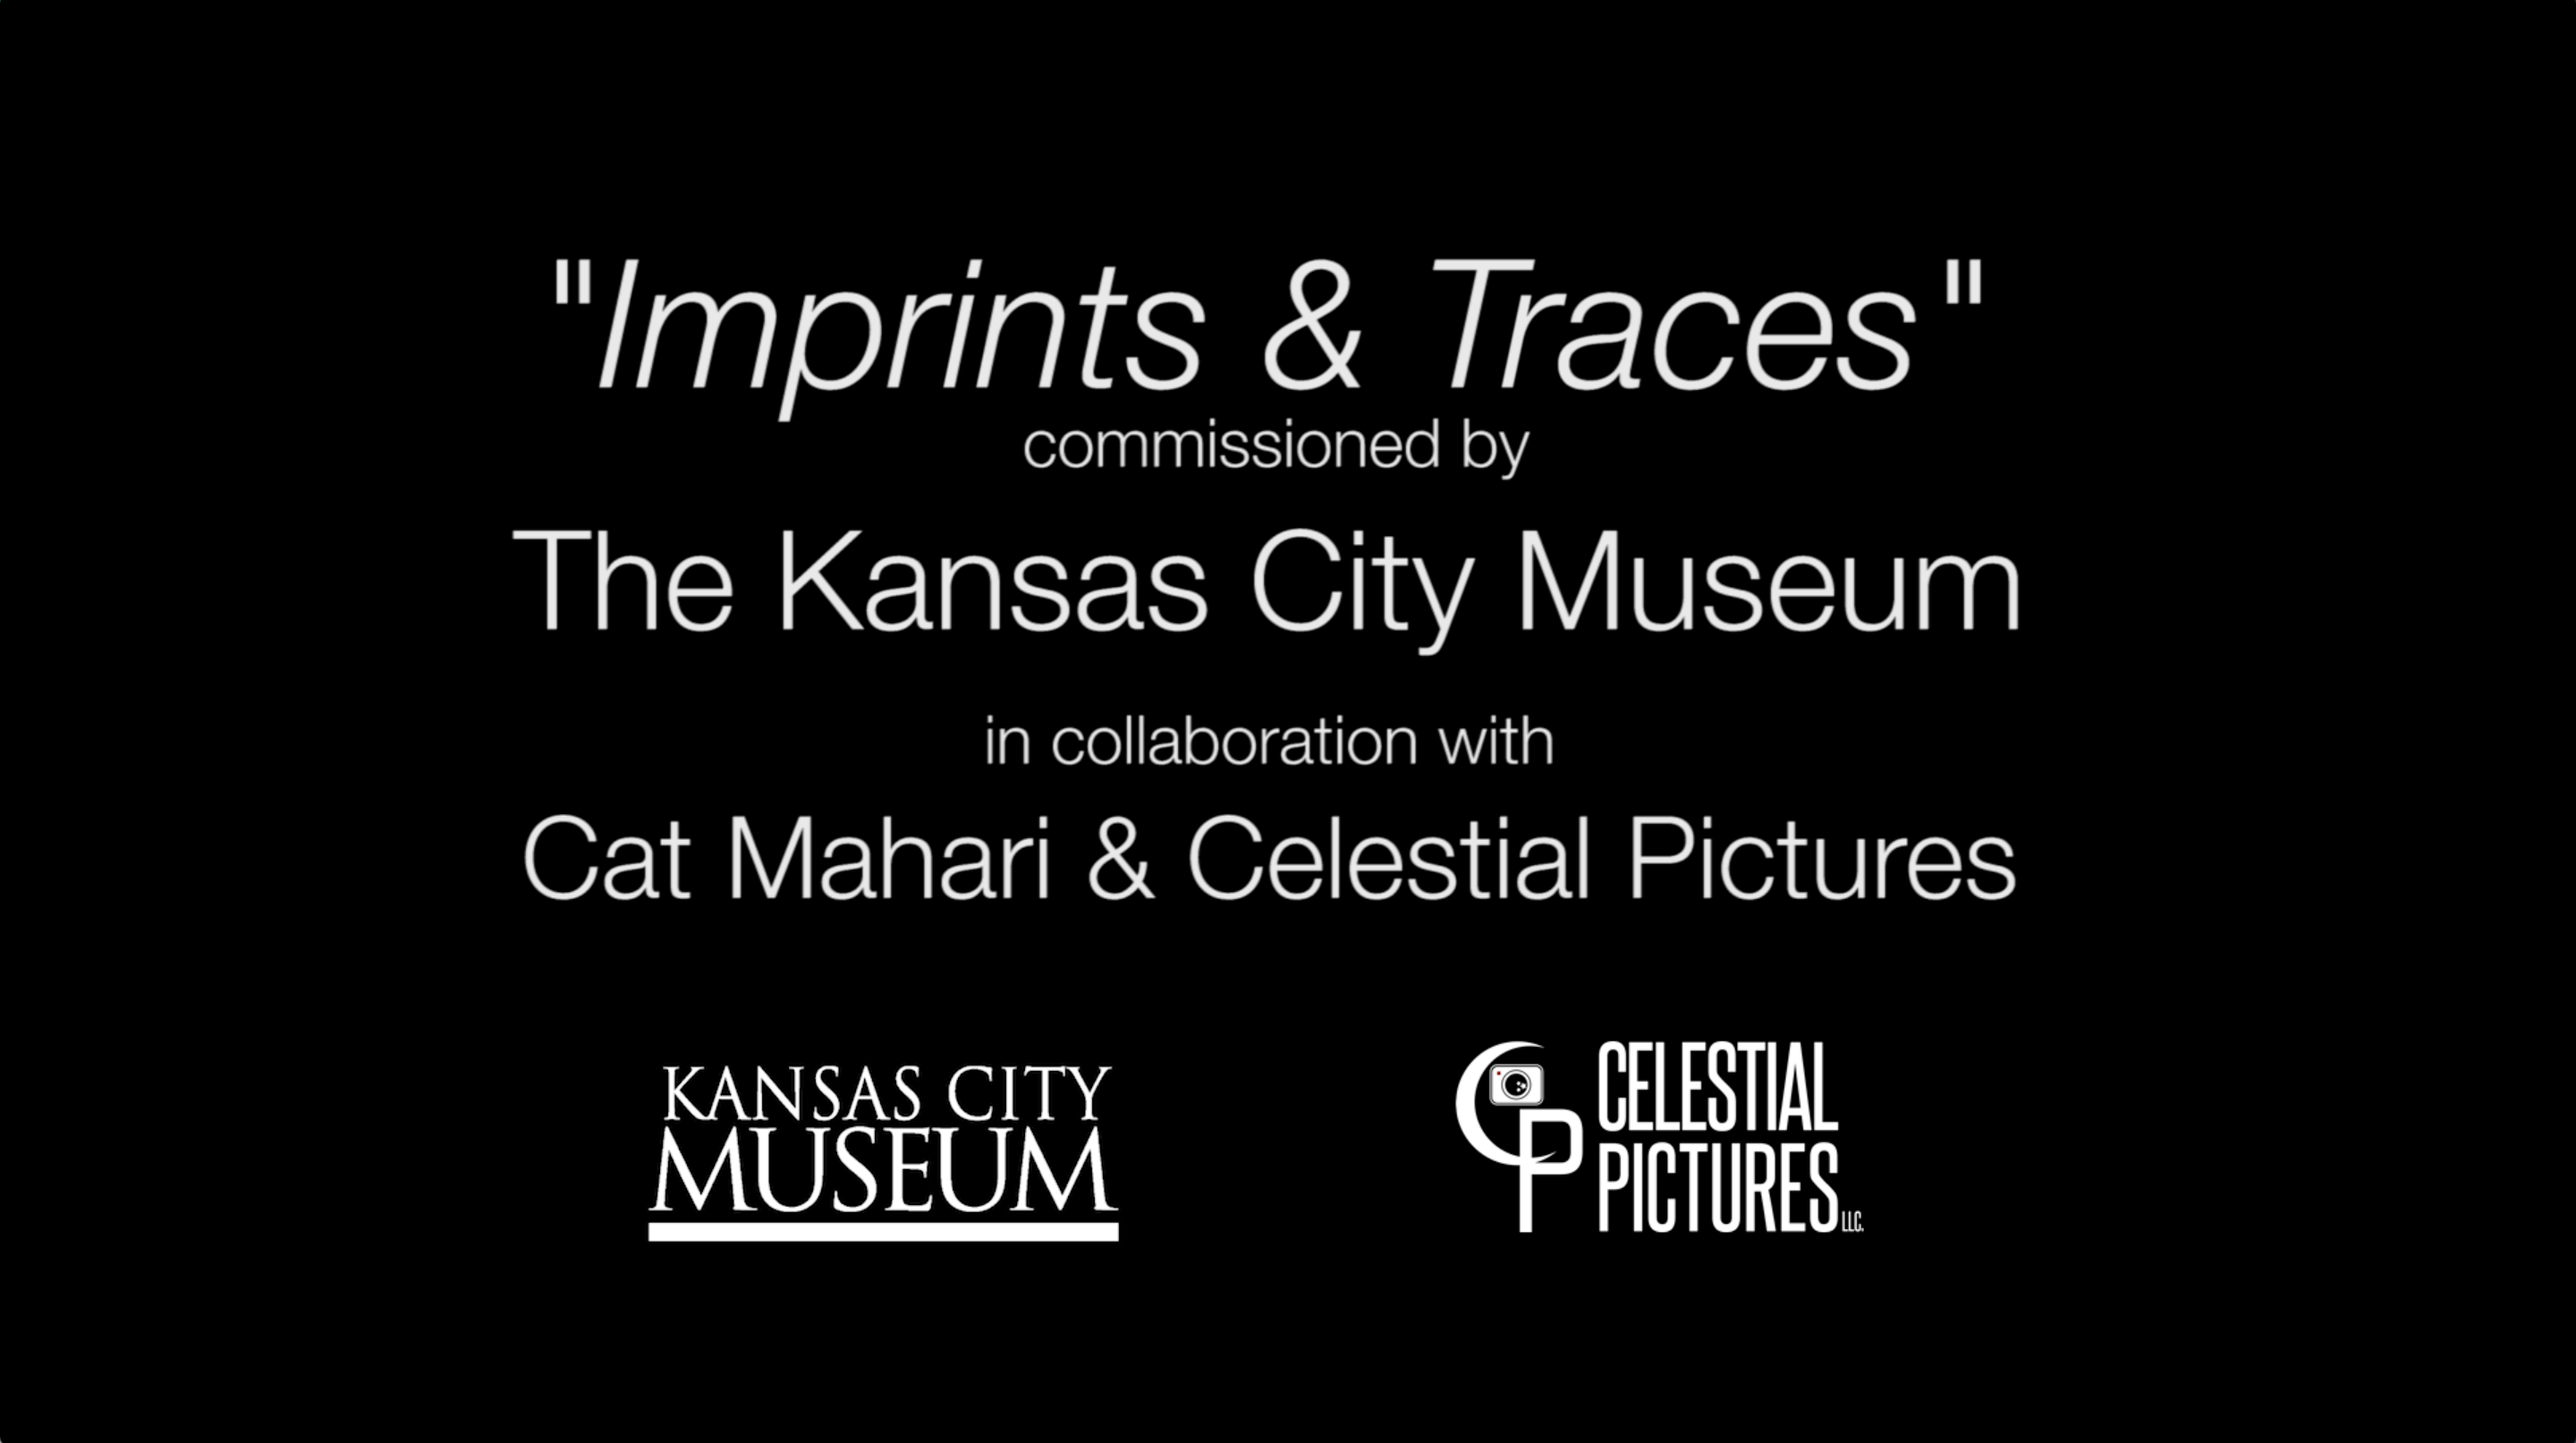 Imprints & Traces commissioned by the Kansas City Museum